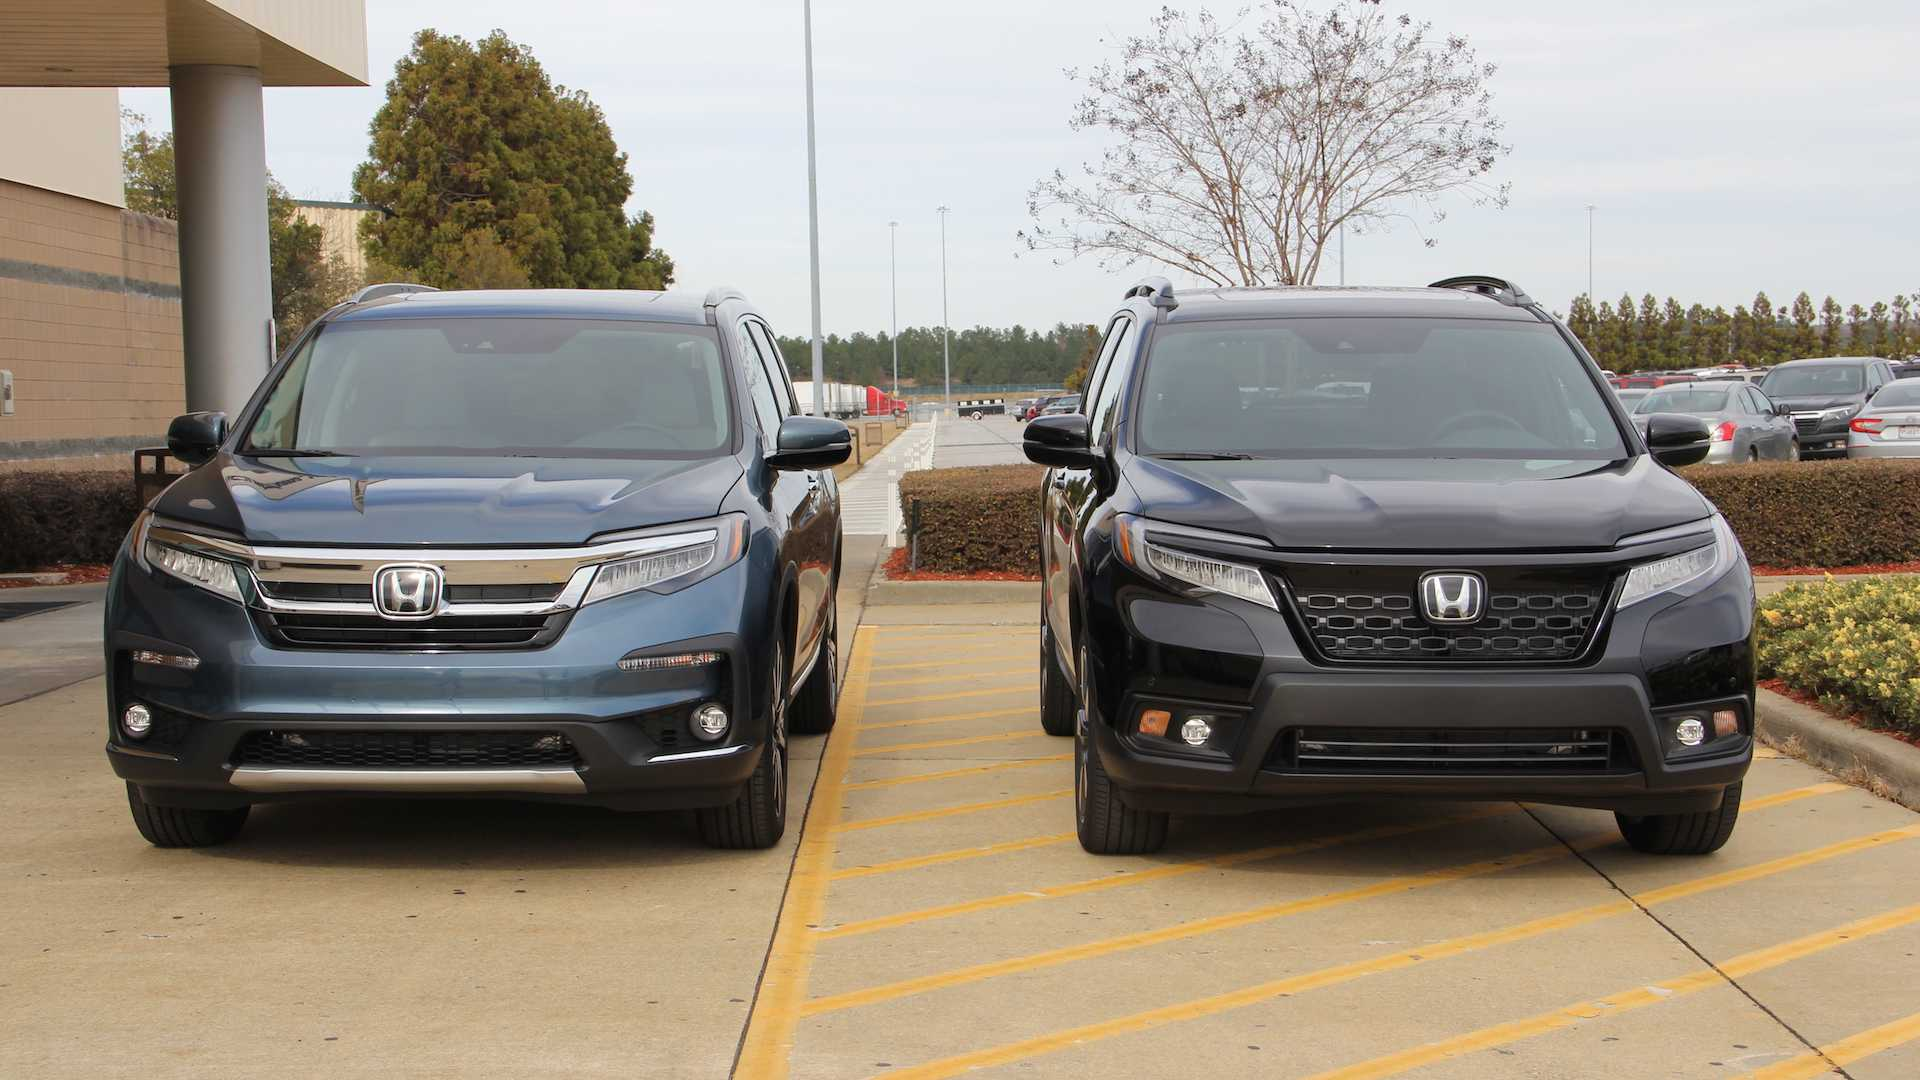 61 New 2020 Honda Pilot Spy Photos Picture